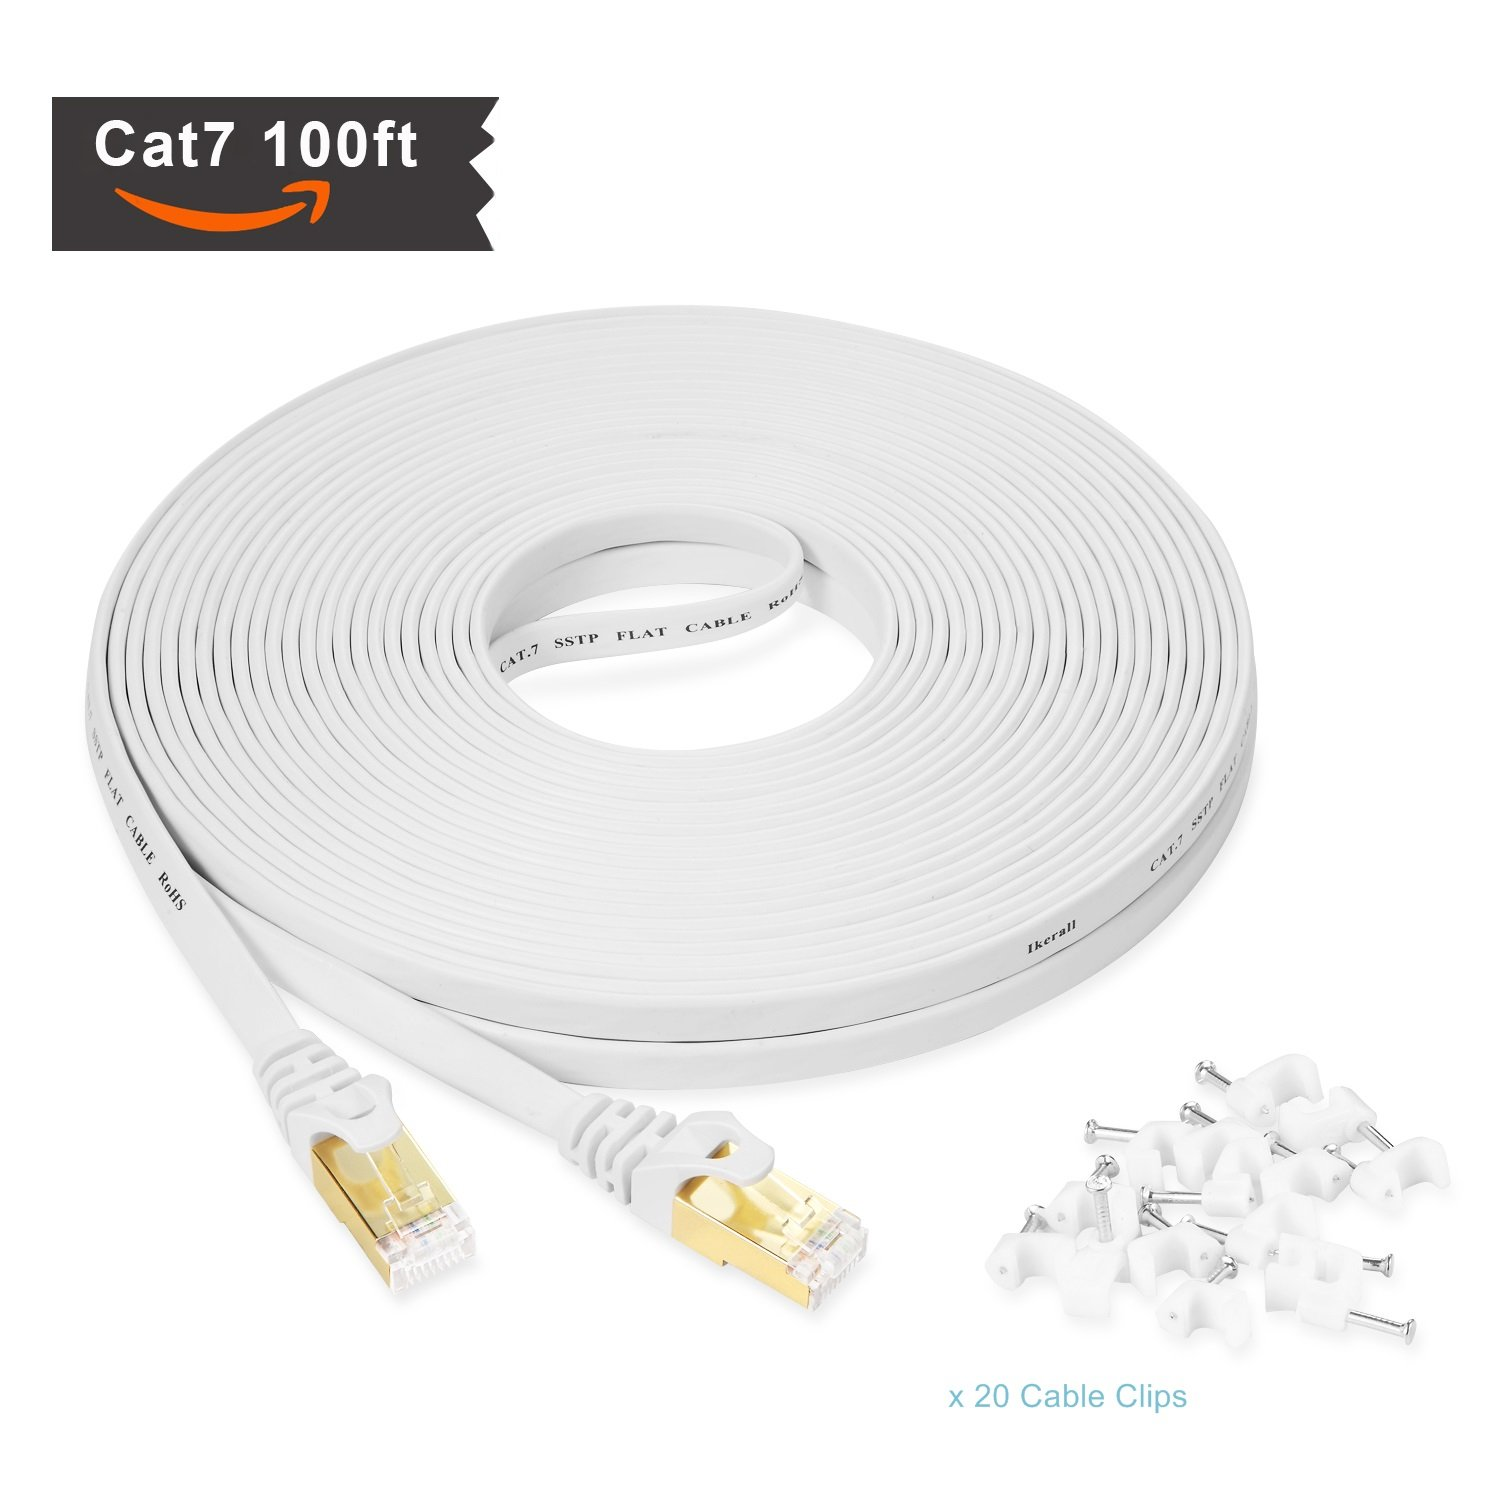 Amazon.com: Ikerall Cat7 Ethernet Cable 100 ft High Speed White – 10GB fastest Shielded (STP) Computer Internet Cable Flat Lan Internet wire With Snagless ...